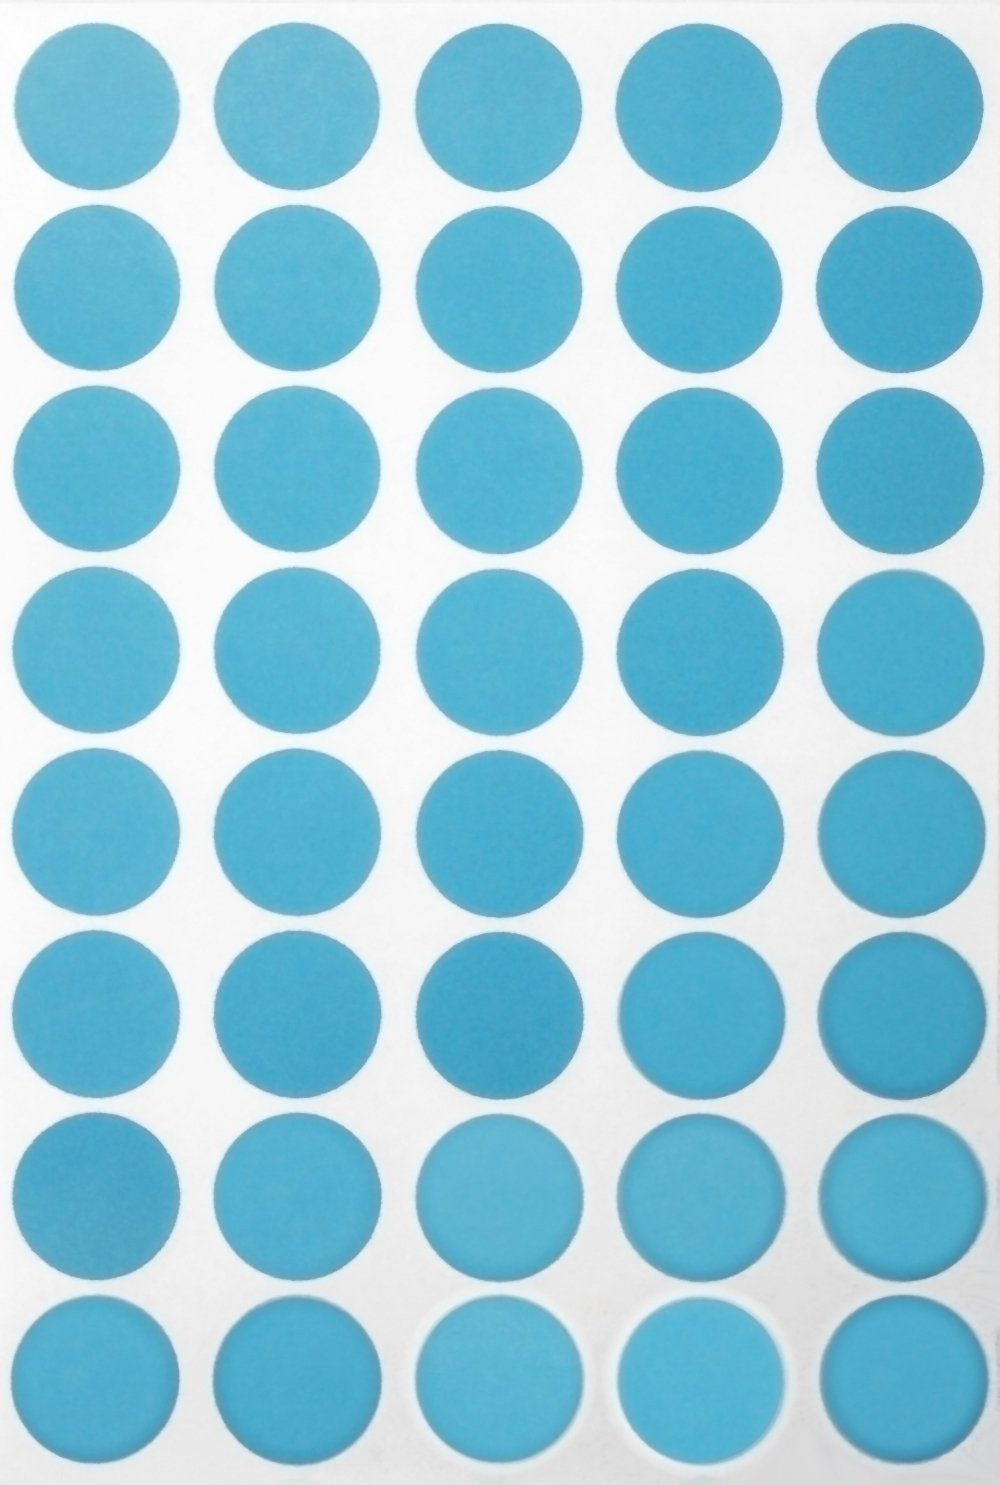 Royal Green Round Stickers Labels dots Sticker 19mm 3/4 inch - Light Blue - 280 Pack